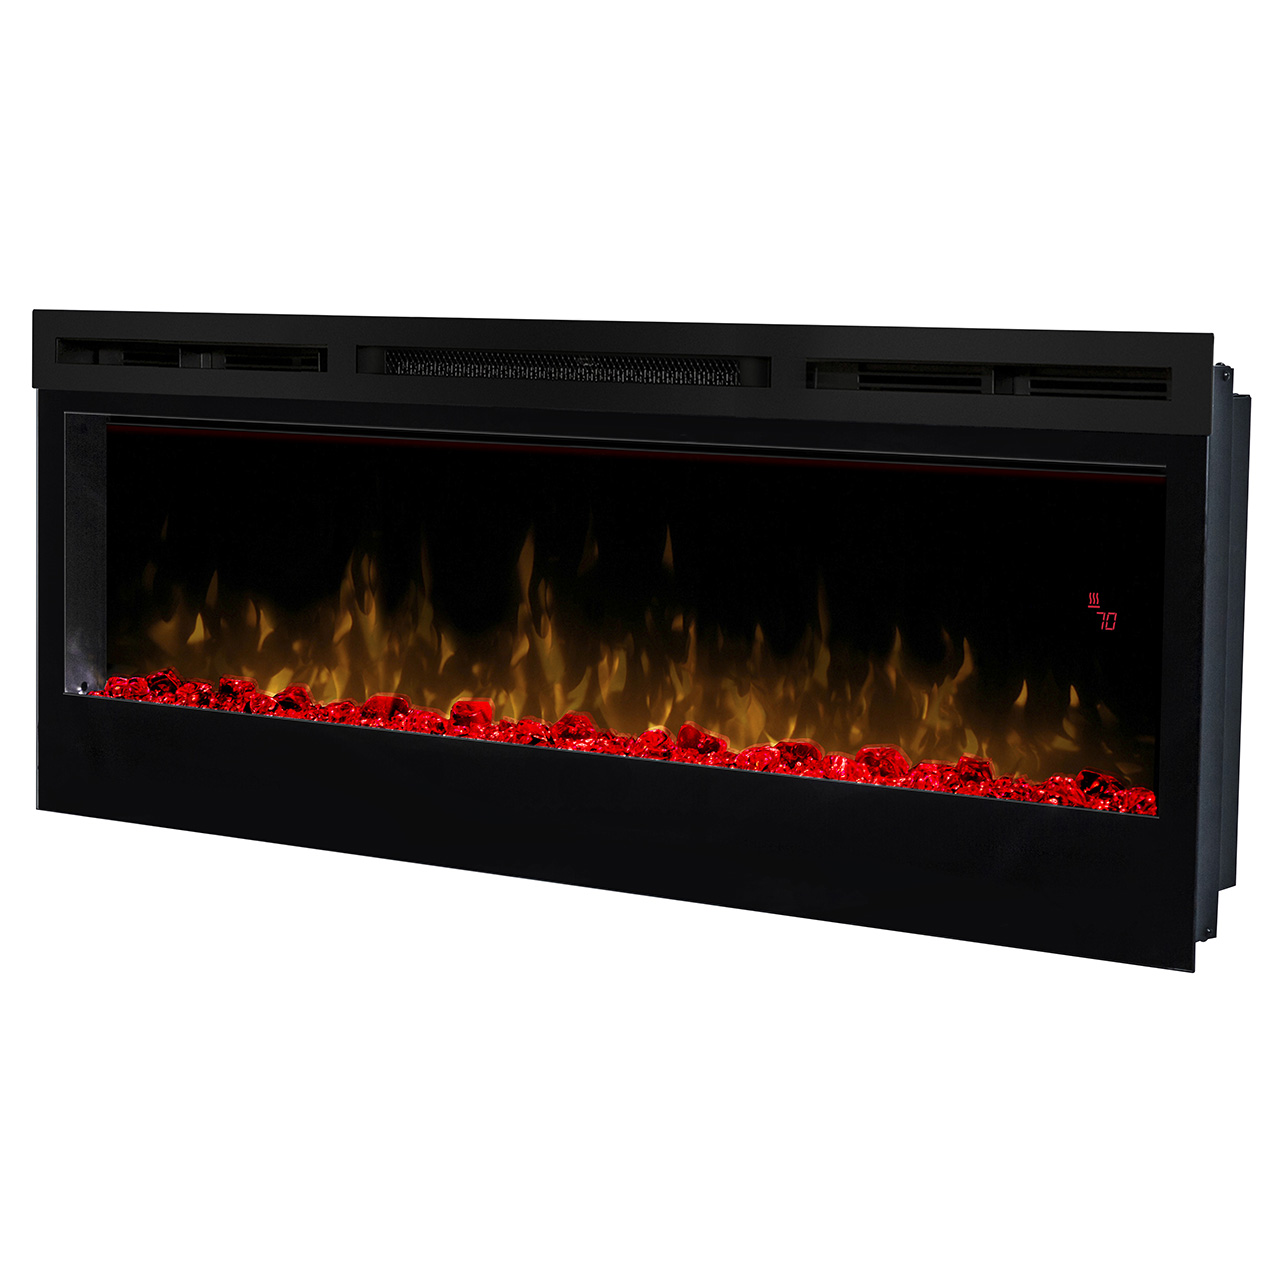 Dimplex Prism Series 50 Quot Wall Mount Electric Fireplace